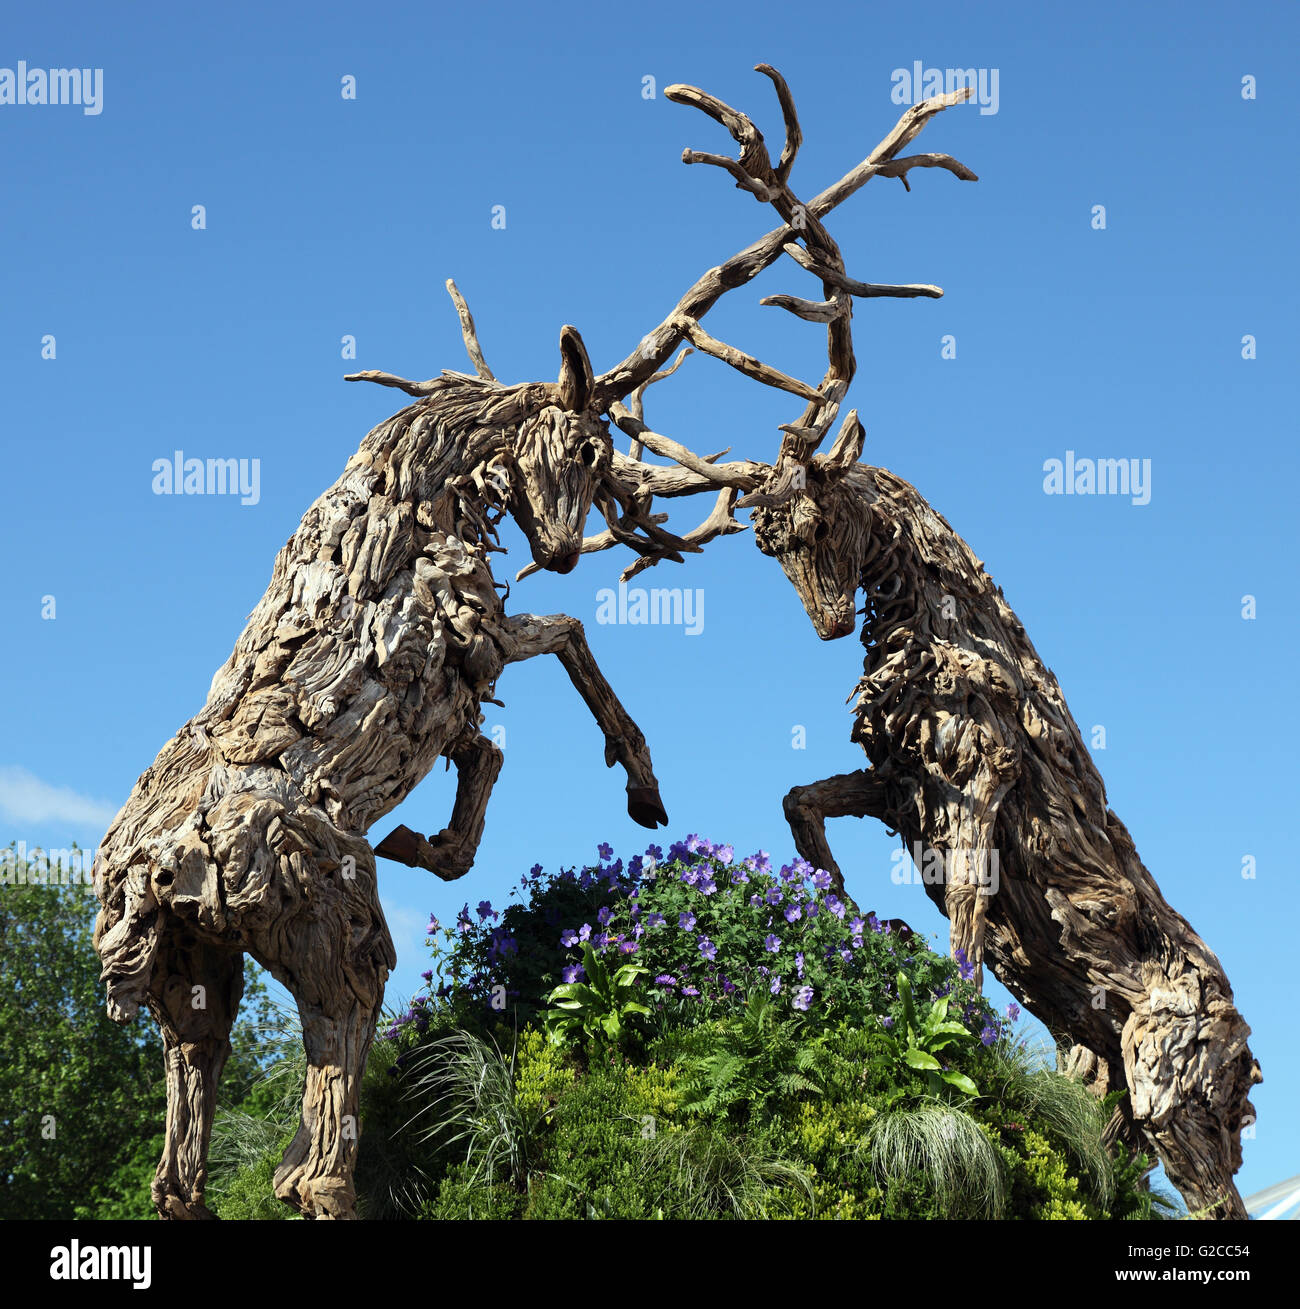 Driftwood fighting stag sculpture by James Doran Webb, RHS Chelsea Flower Show - Stock Image